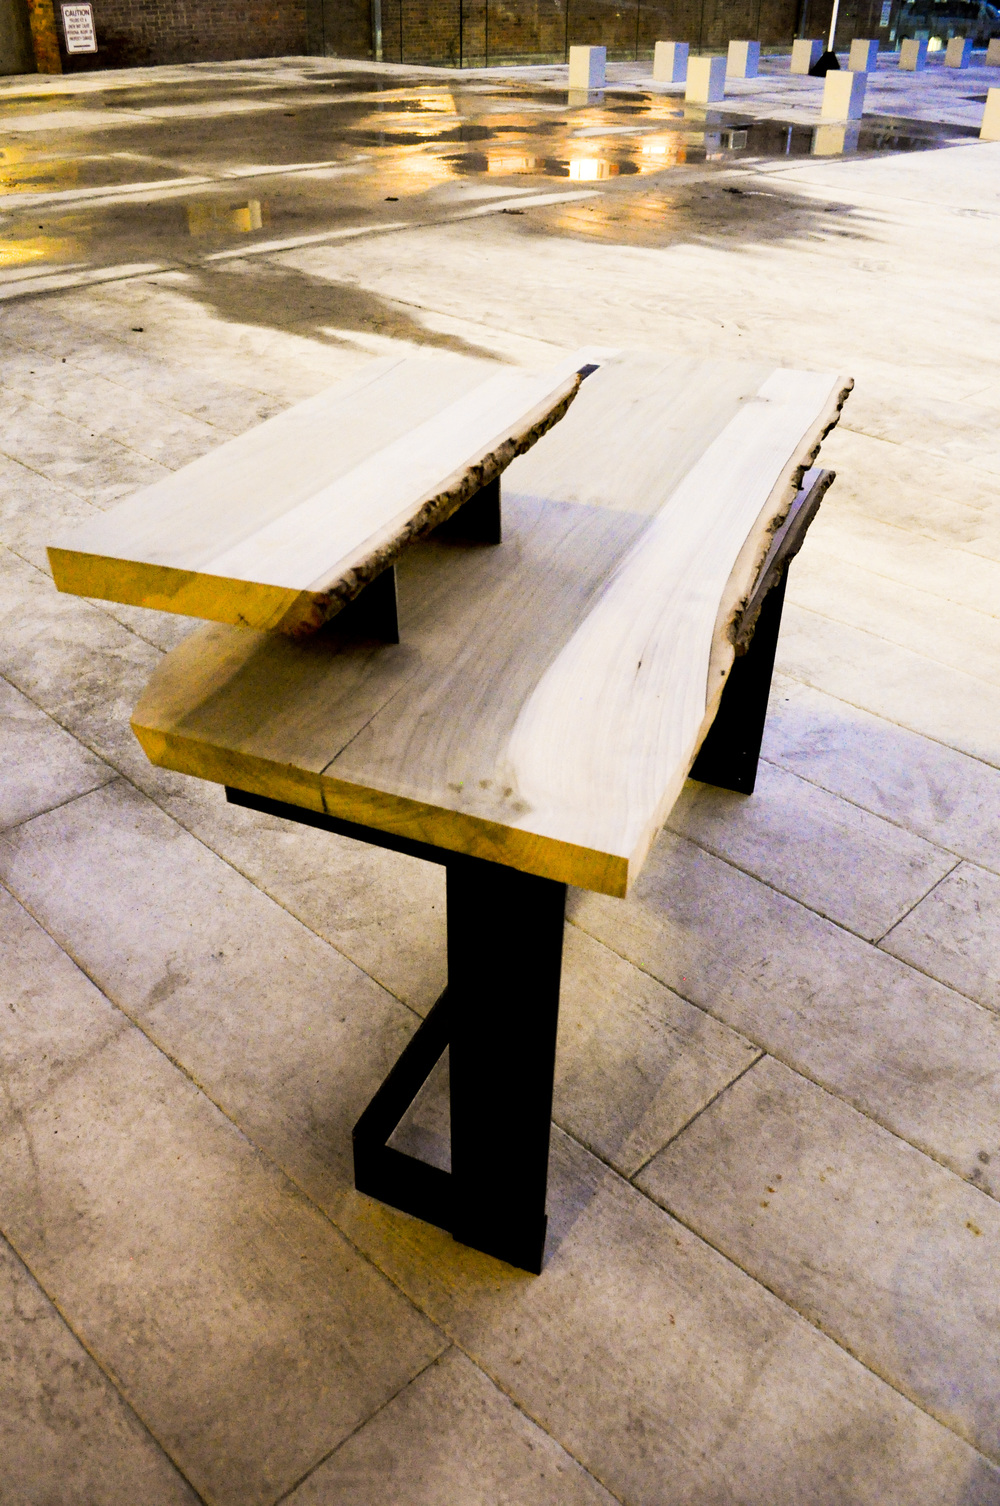 A surface for ideas - Natural-edged poplar combined with a steel base. Constructed by folding the metal through the wood, suspending the slab in the air and making a space for one to sit, ponder and manifest ideas into life. Approx. size: 50